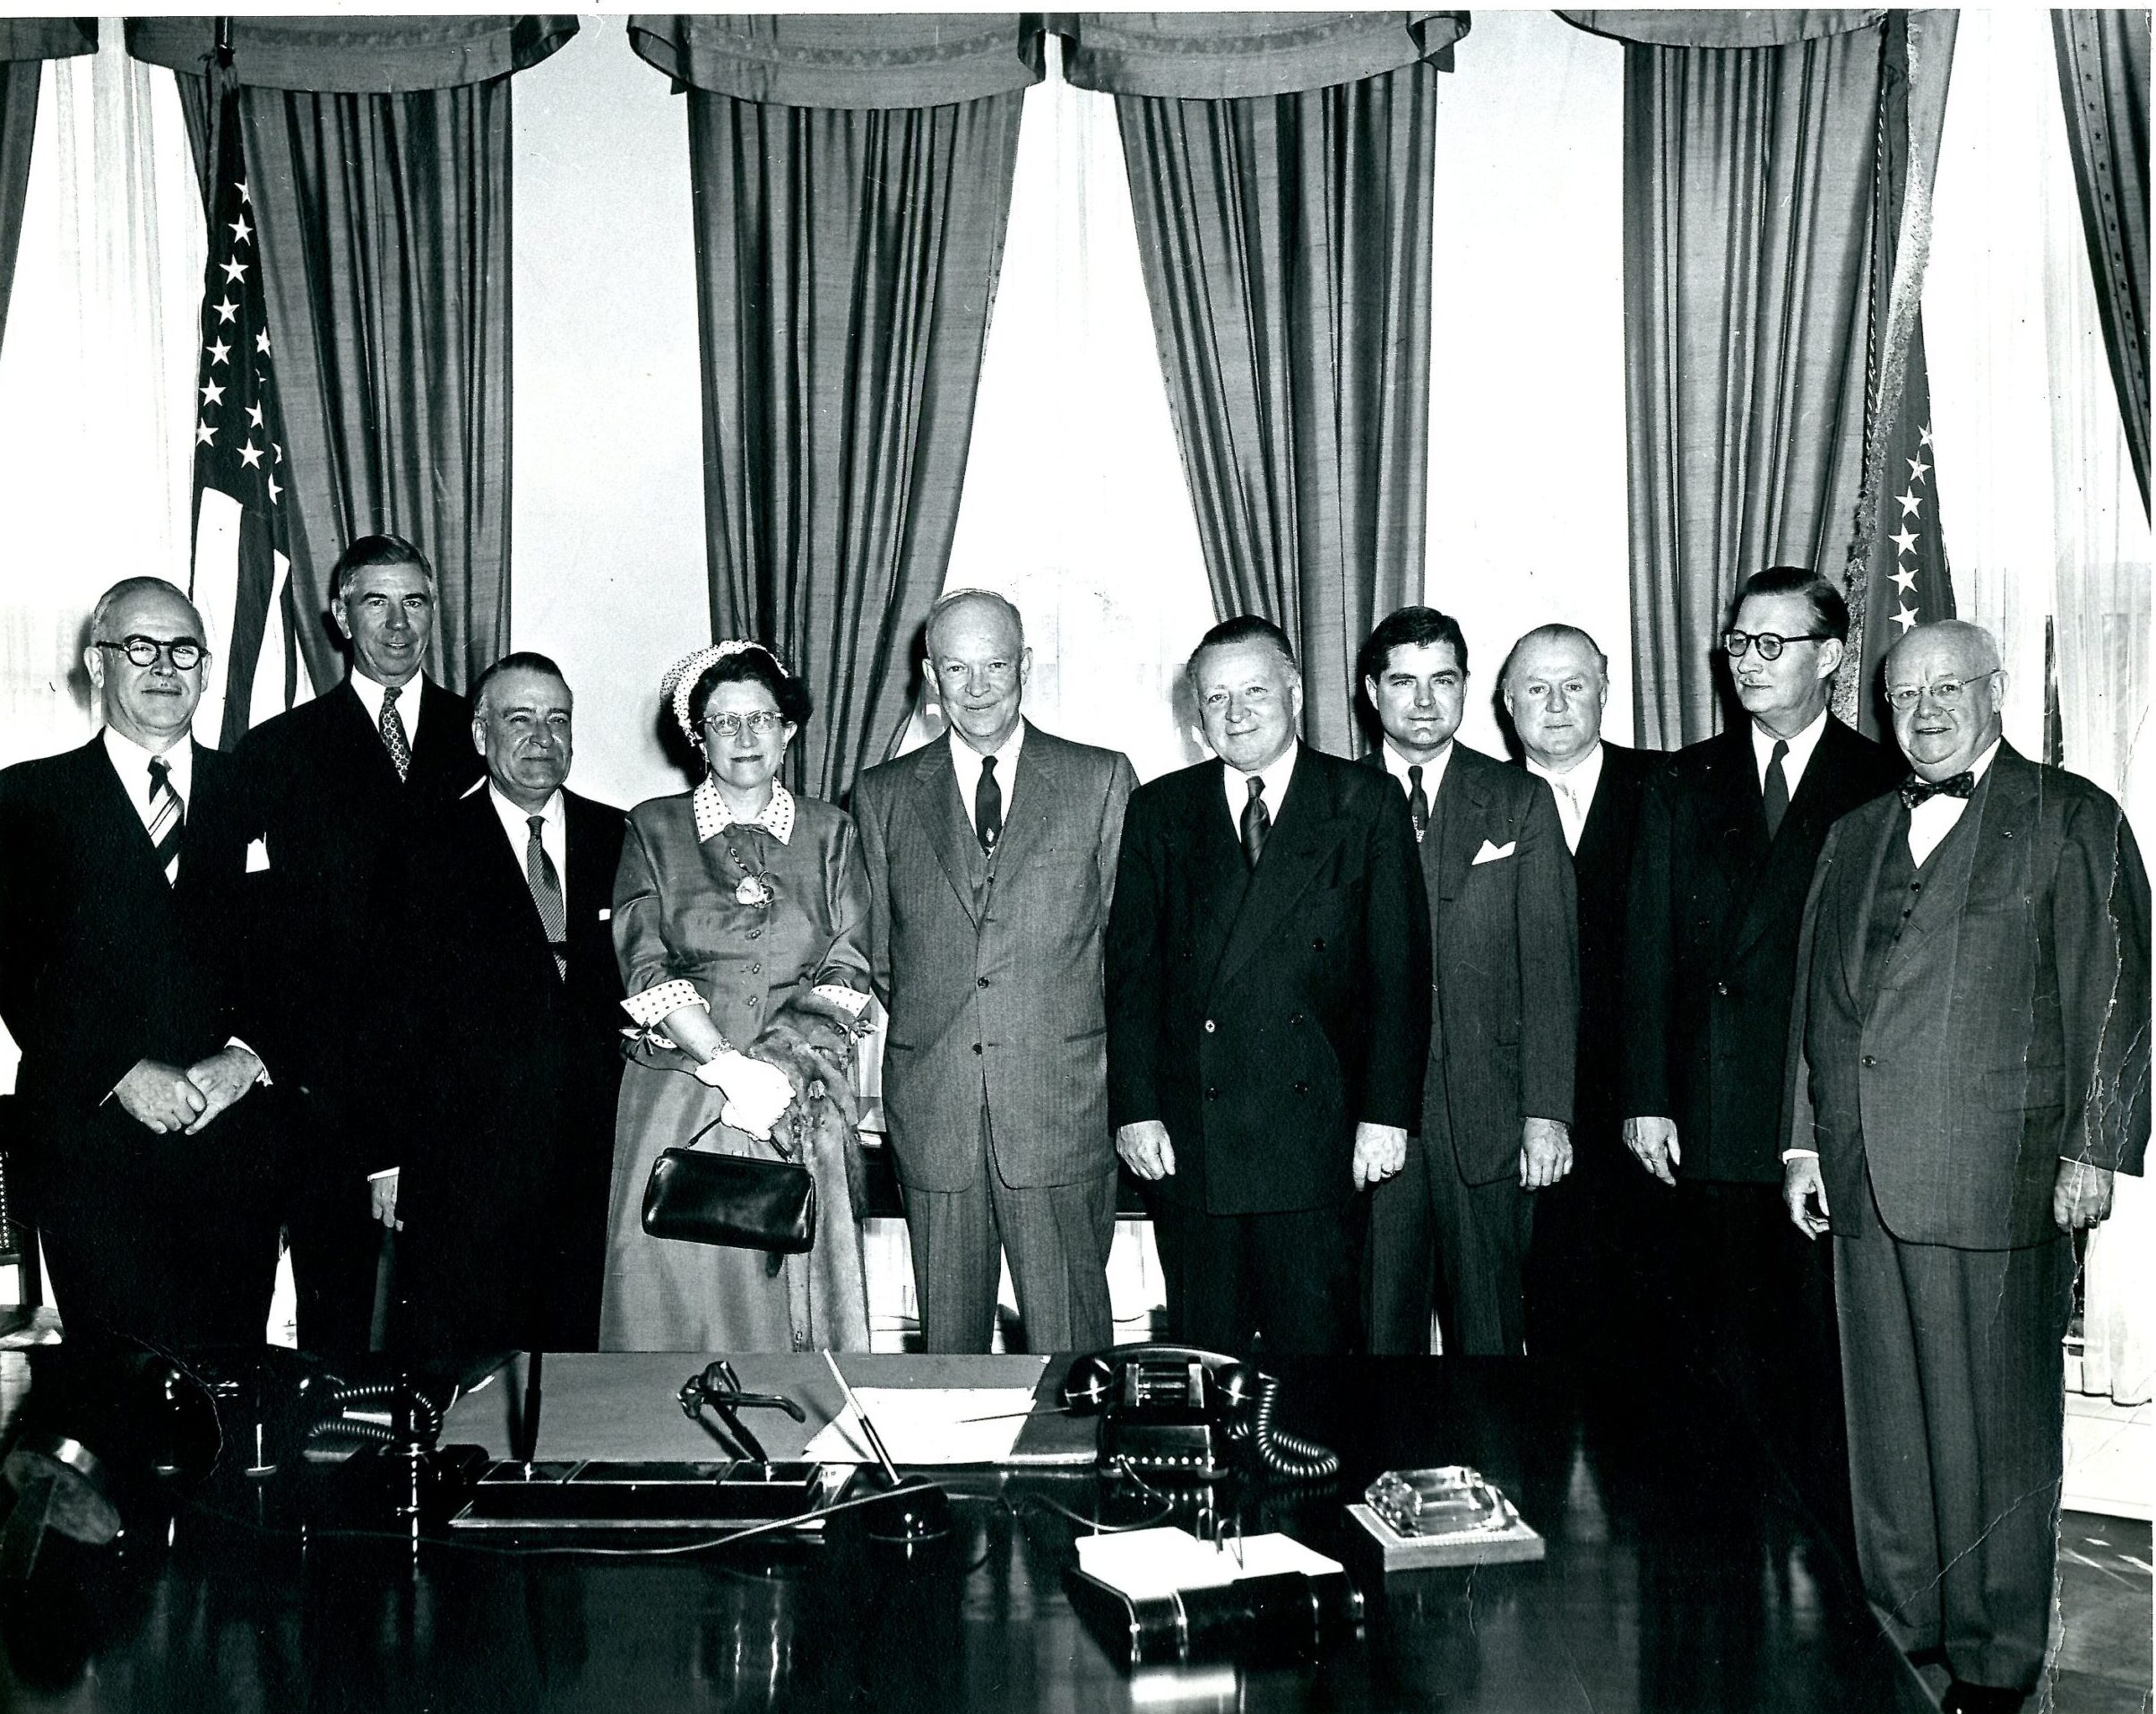 A group portrait showing several men wearing suits as well as Consuelo Northrop Bailey and President Eisenhower in the center. Everyone is looking at the camera and smiling. The President's desk is visible in the foreground while two flags and several window treatments are apparent in the background.